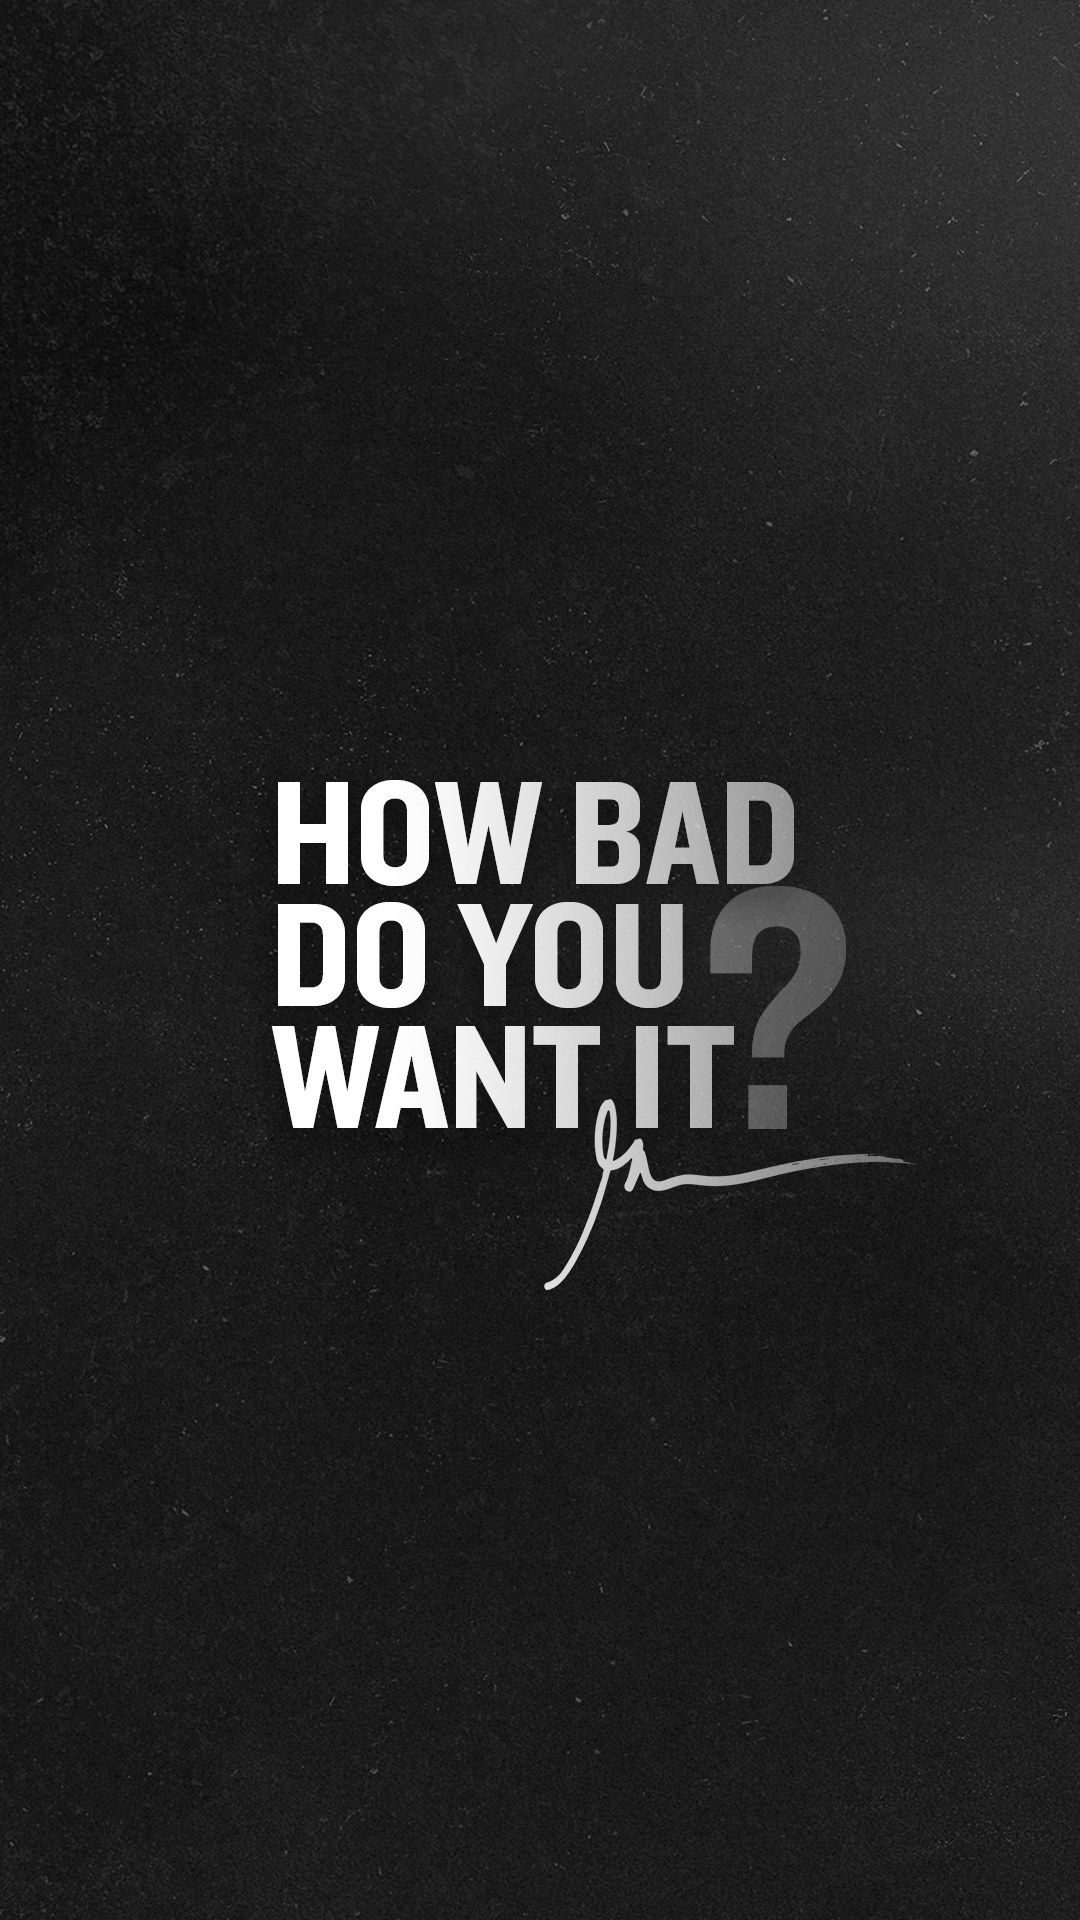 How Bad Do You Want It Follow For Daily Study Motivation Youtube Com C Motivatio Motivational Quotes Wallpaper Good Life Quotes Gym Motivation Quotes